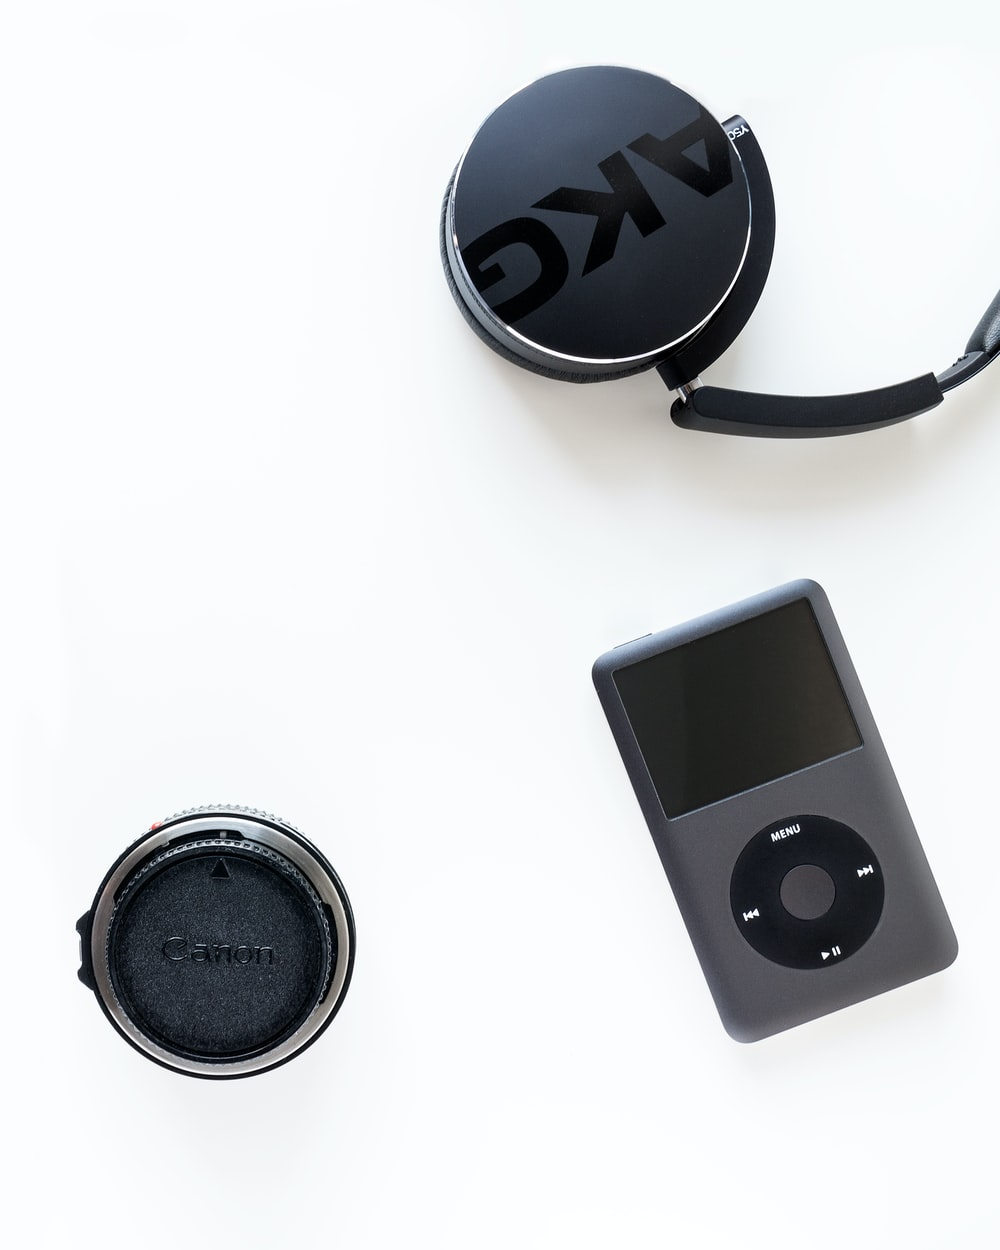 black iPod classic beside black Canon camera lens